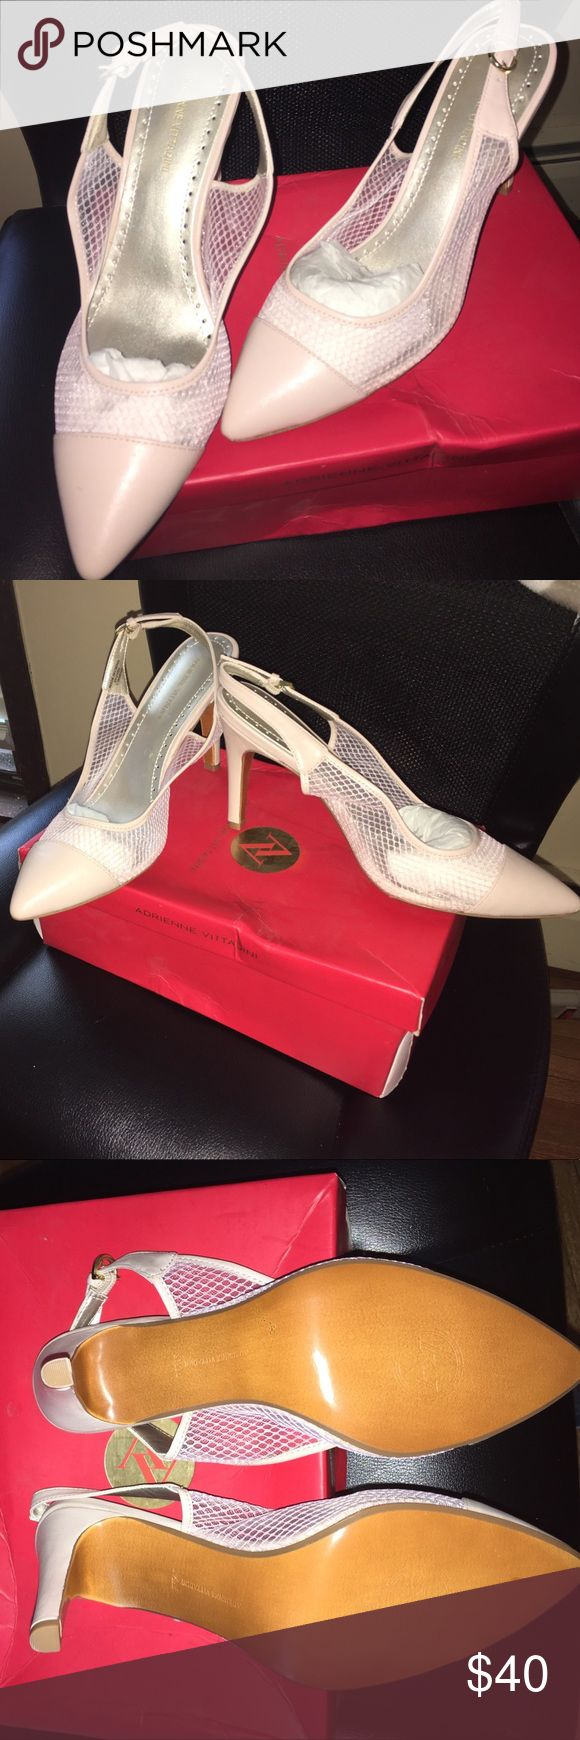 Adrienne Vittadini sling backs Pink mesh sling backs. Never worn. Kept in box. They will go with almost any style! Make an offer!!! Adrienne Vittadini Shoes Heels